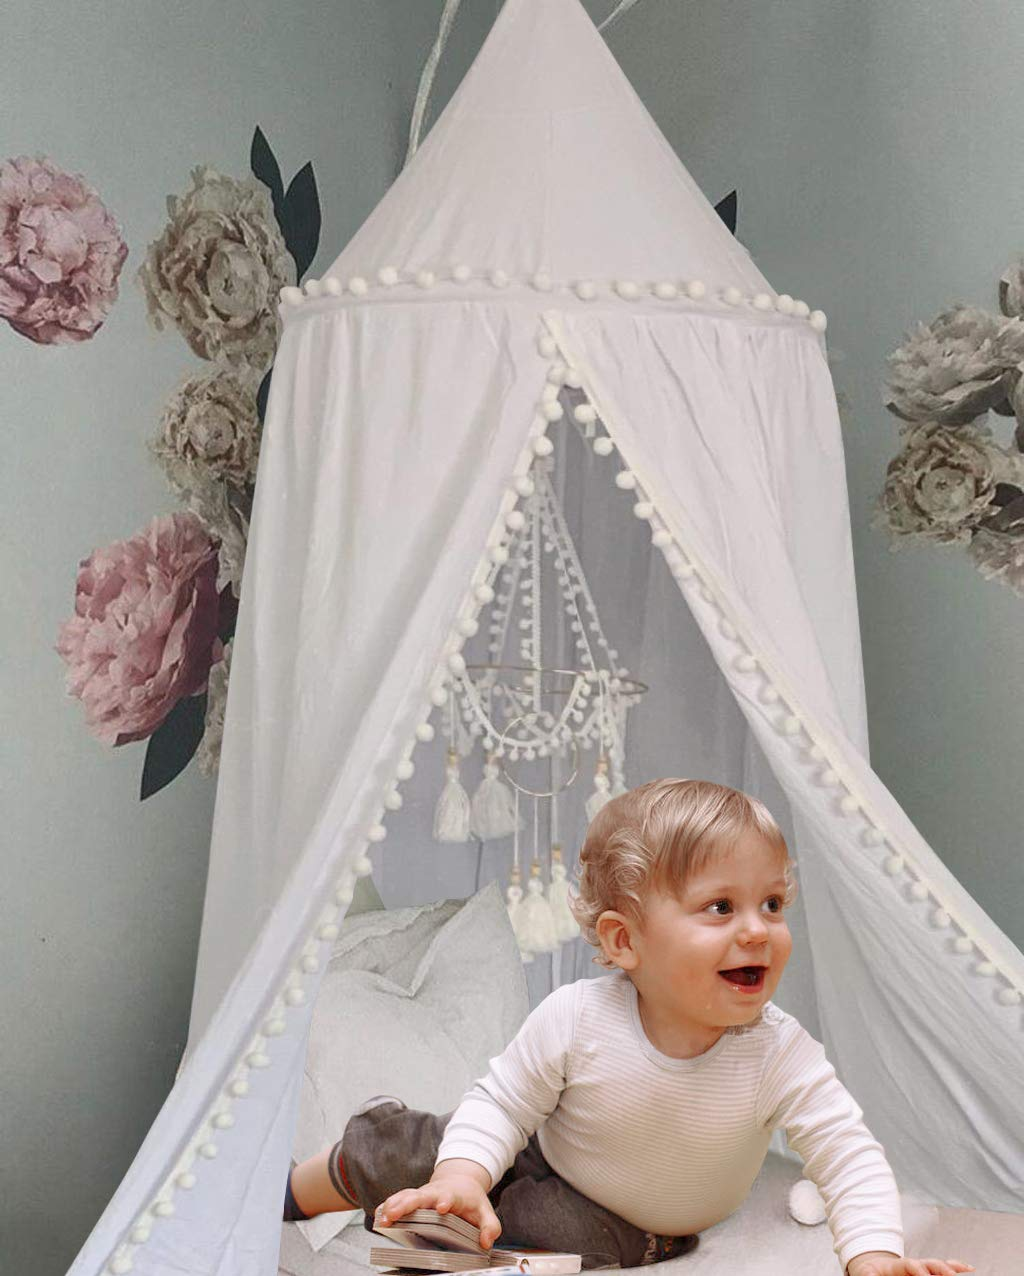 Crib Bed Canopy for Girls Bed with Pom Pom, Cotton Dome Mosquito Net for Baby, Kids Indoor Outdoor Playing Reading, Bedroom Decoration (White)